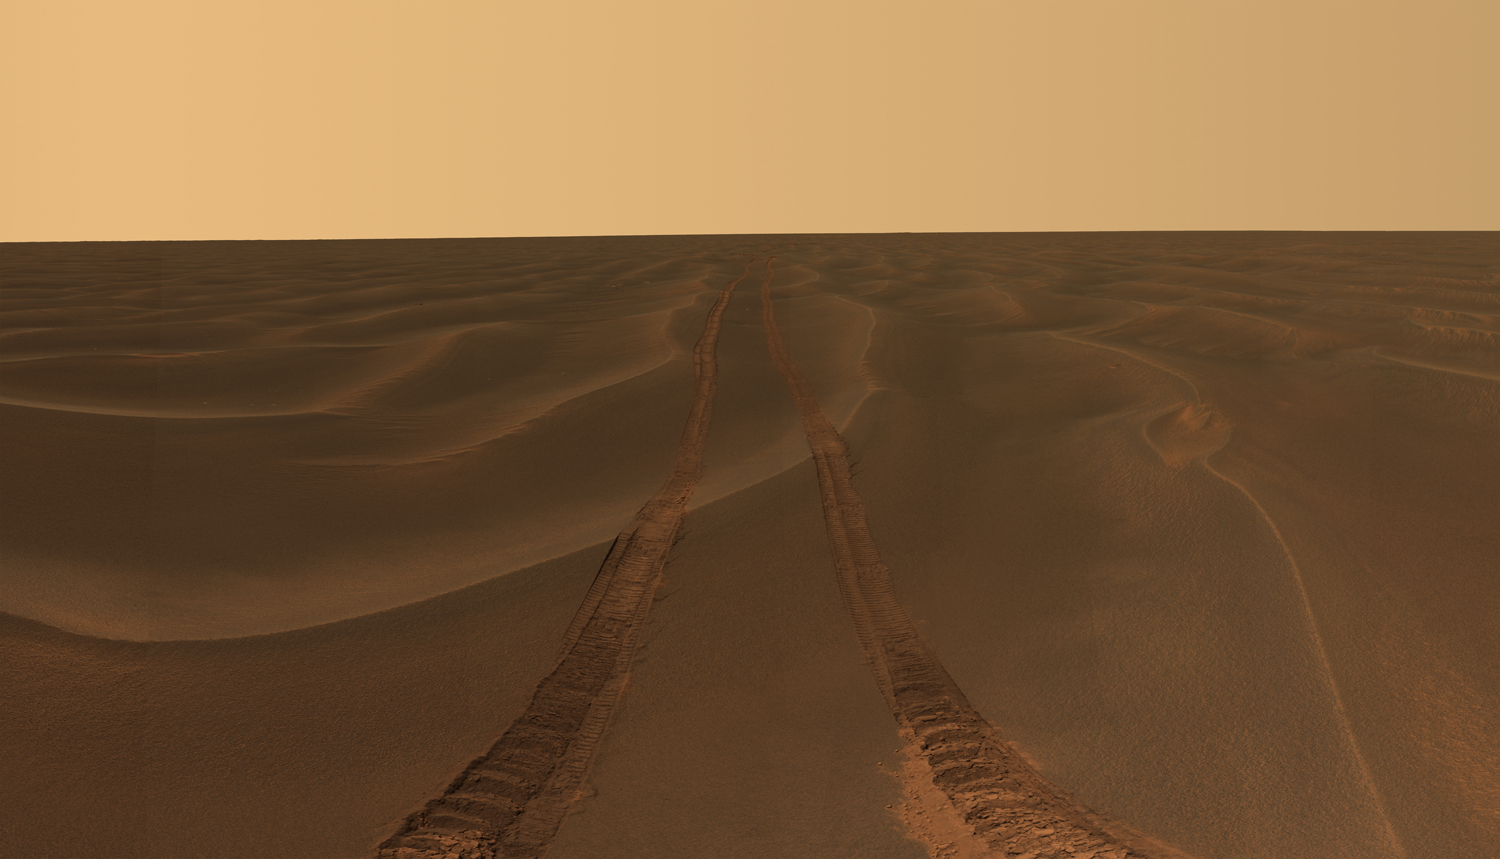 Rover tracks disappear toward the horizon like the wake of a ship across the desolate sea of sand between the craters Endurance and Victoria on the Meridiani Plains.